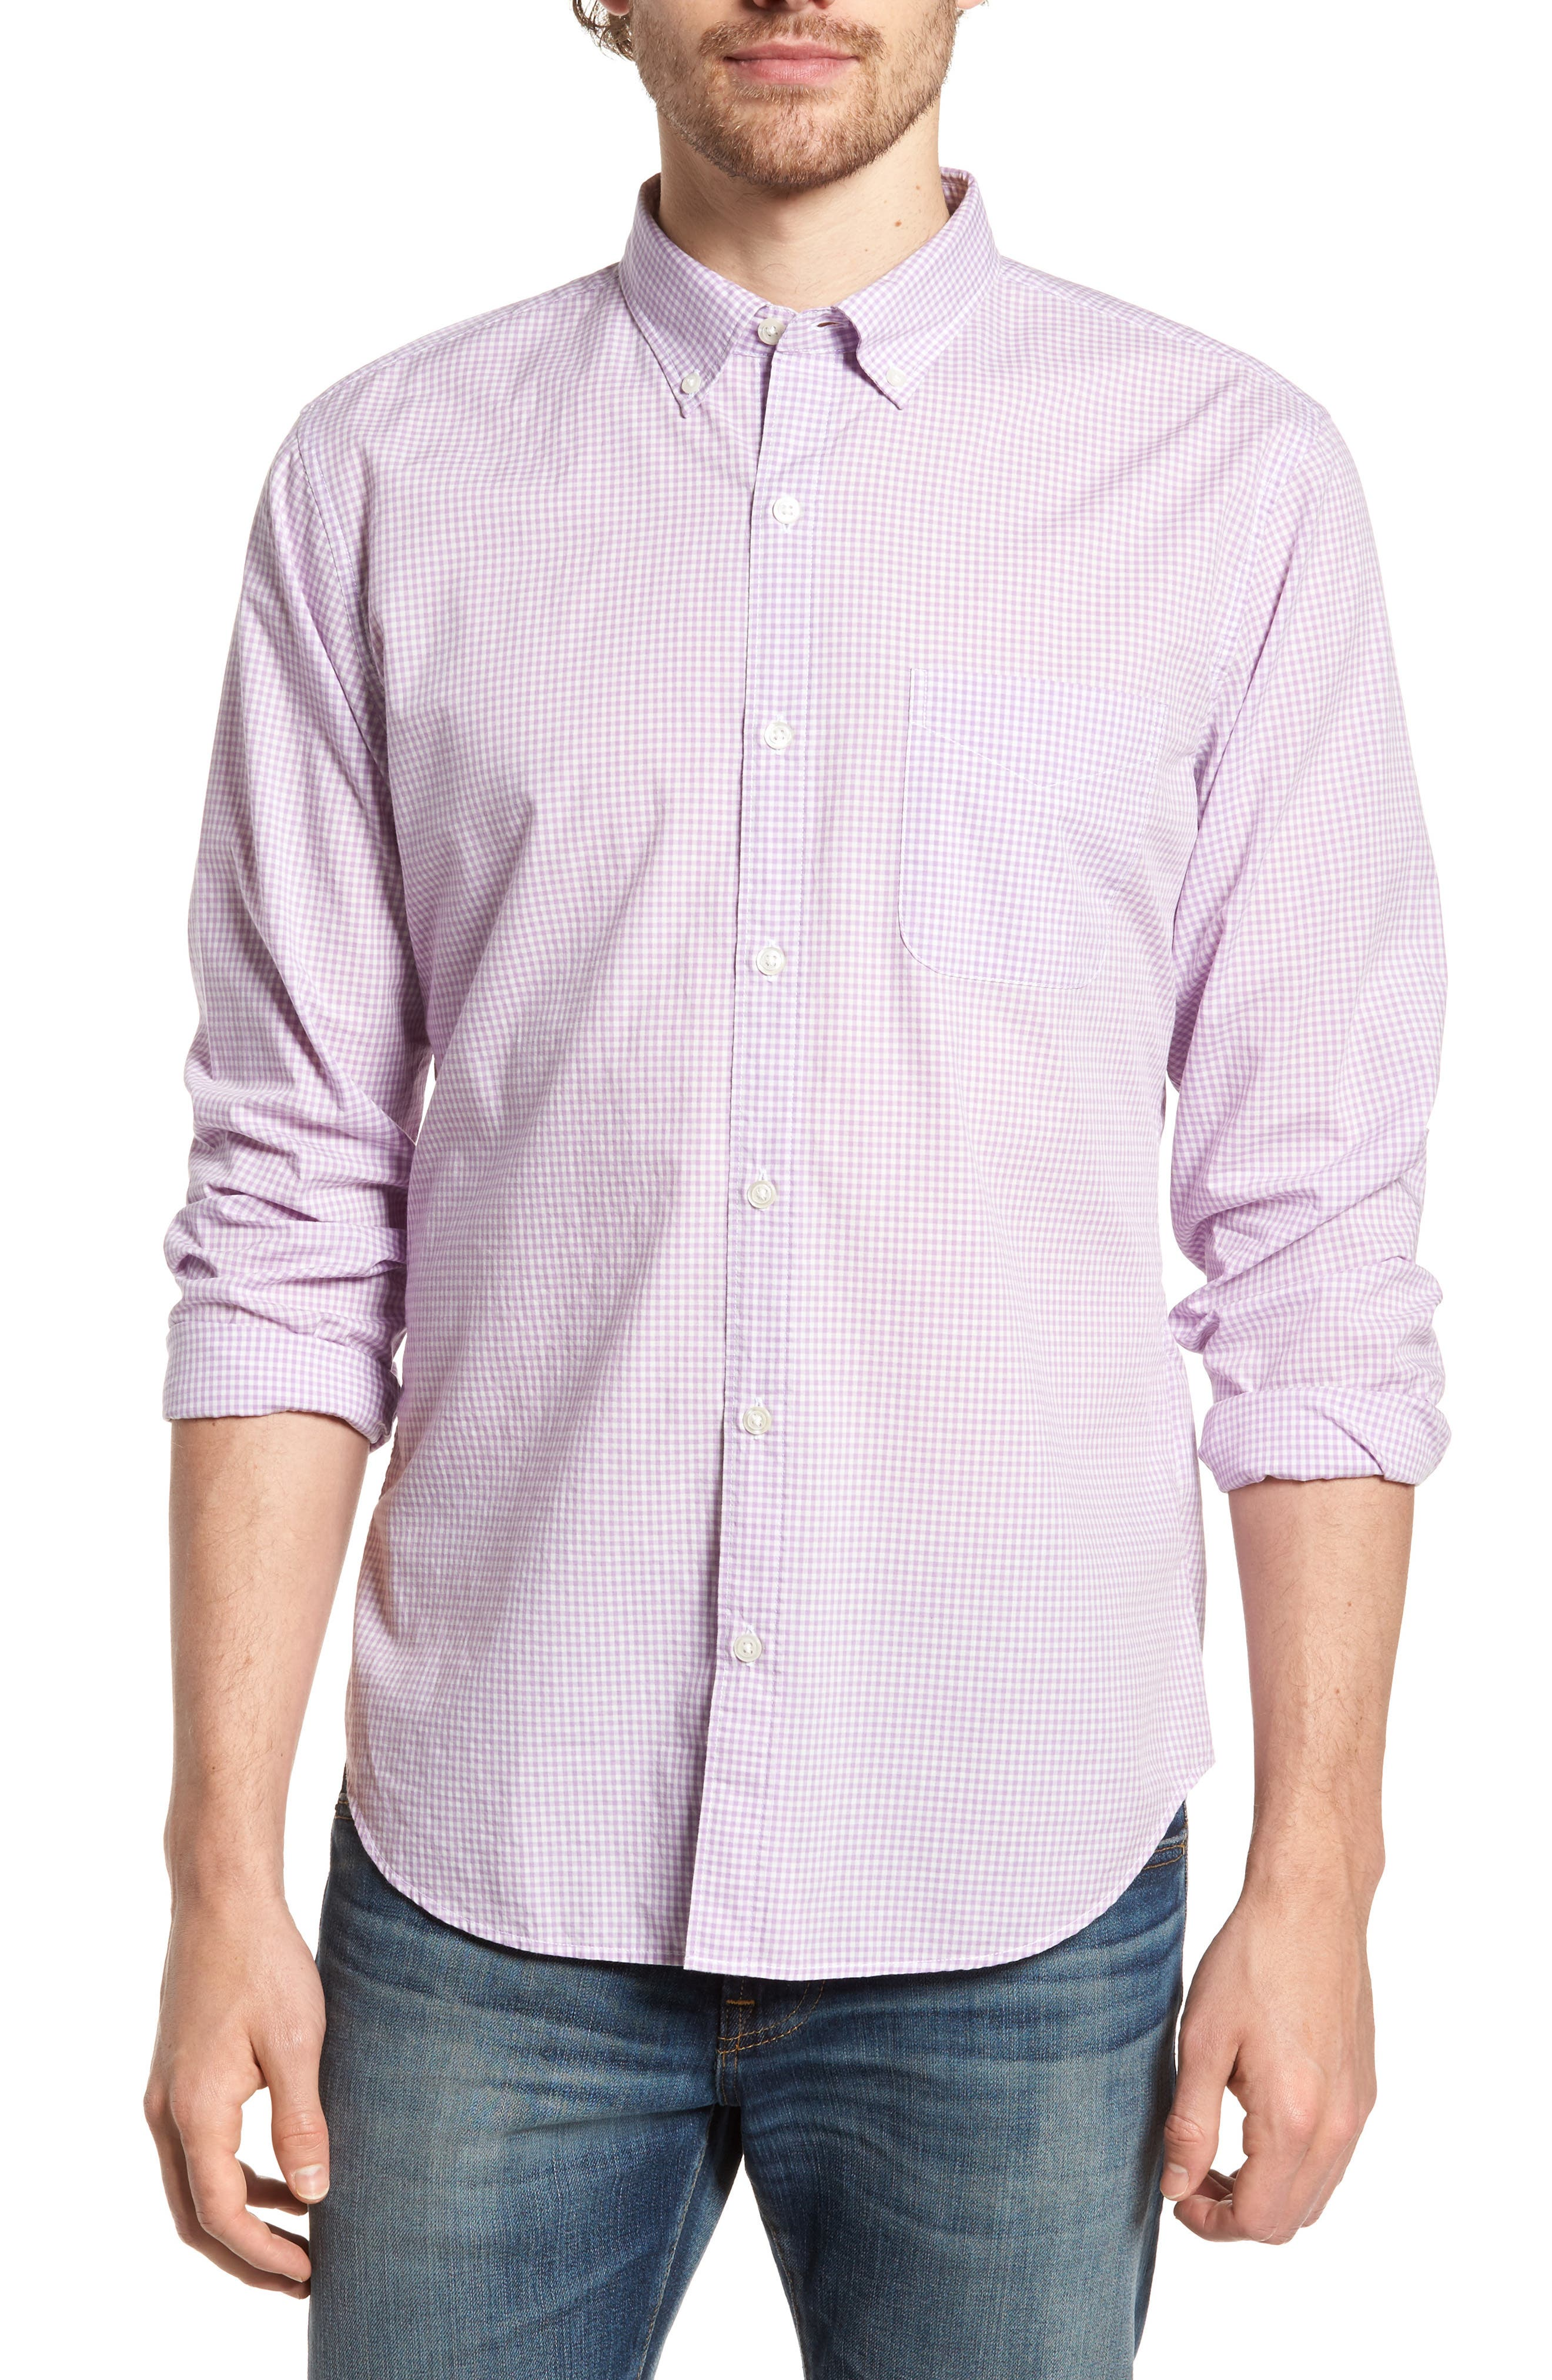 Slim Fit Summerweight Check Sport Shirt,                             Main thumbnail 1, color,                             Bondi Gingham - Lavender